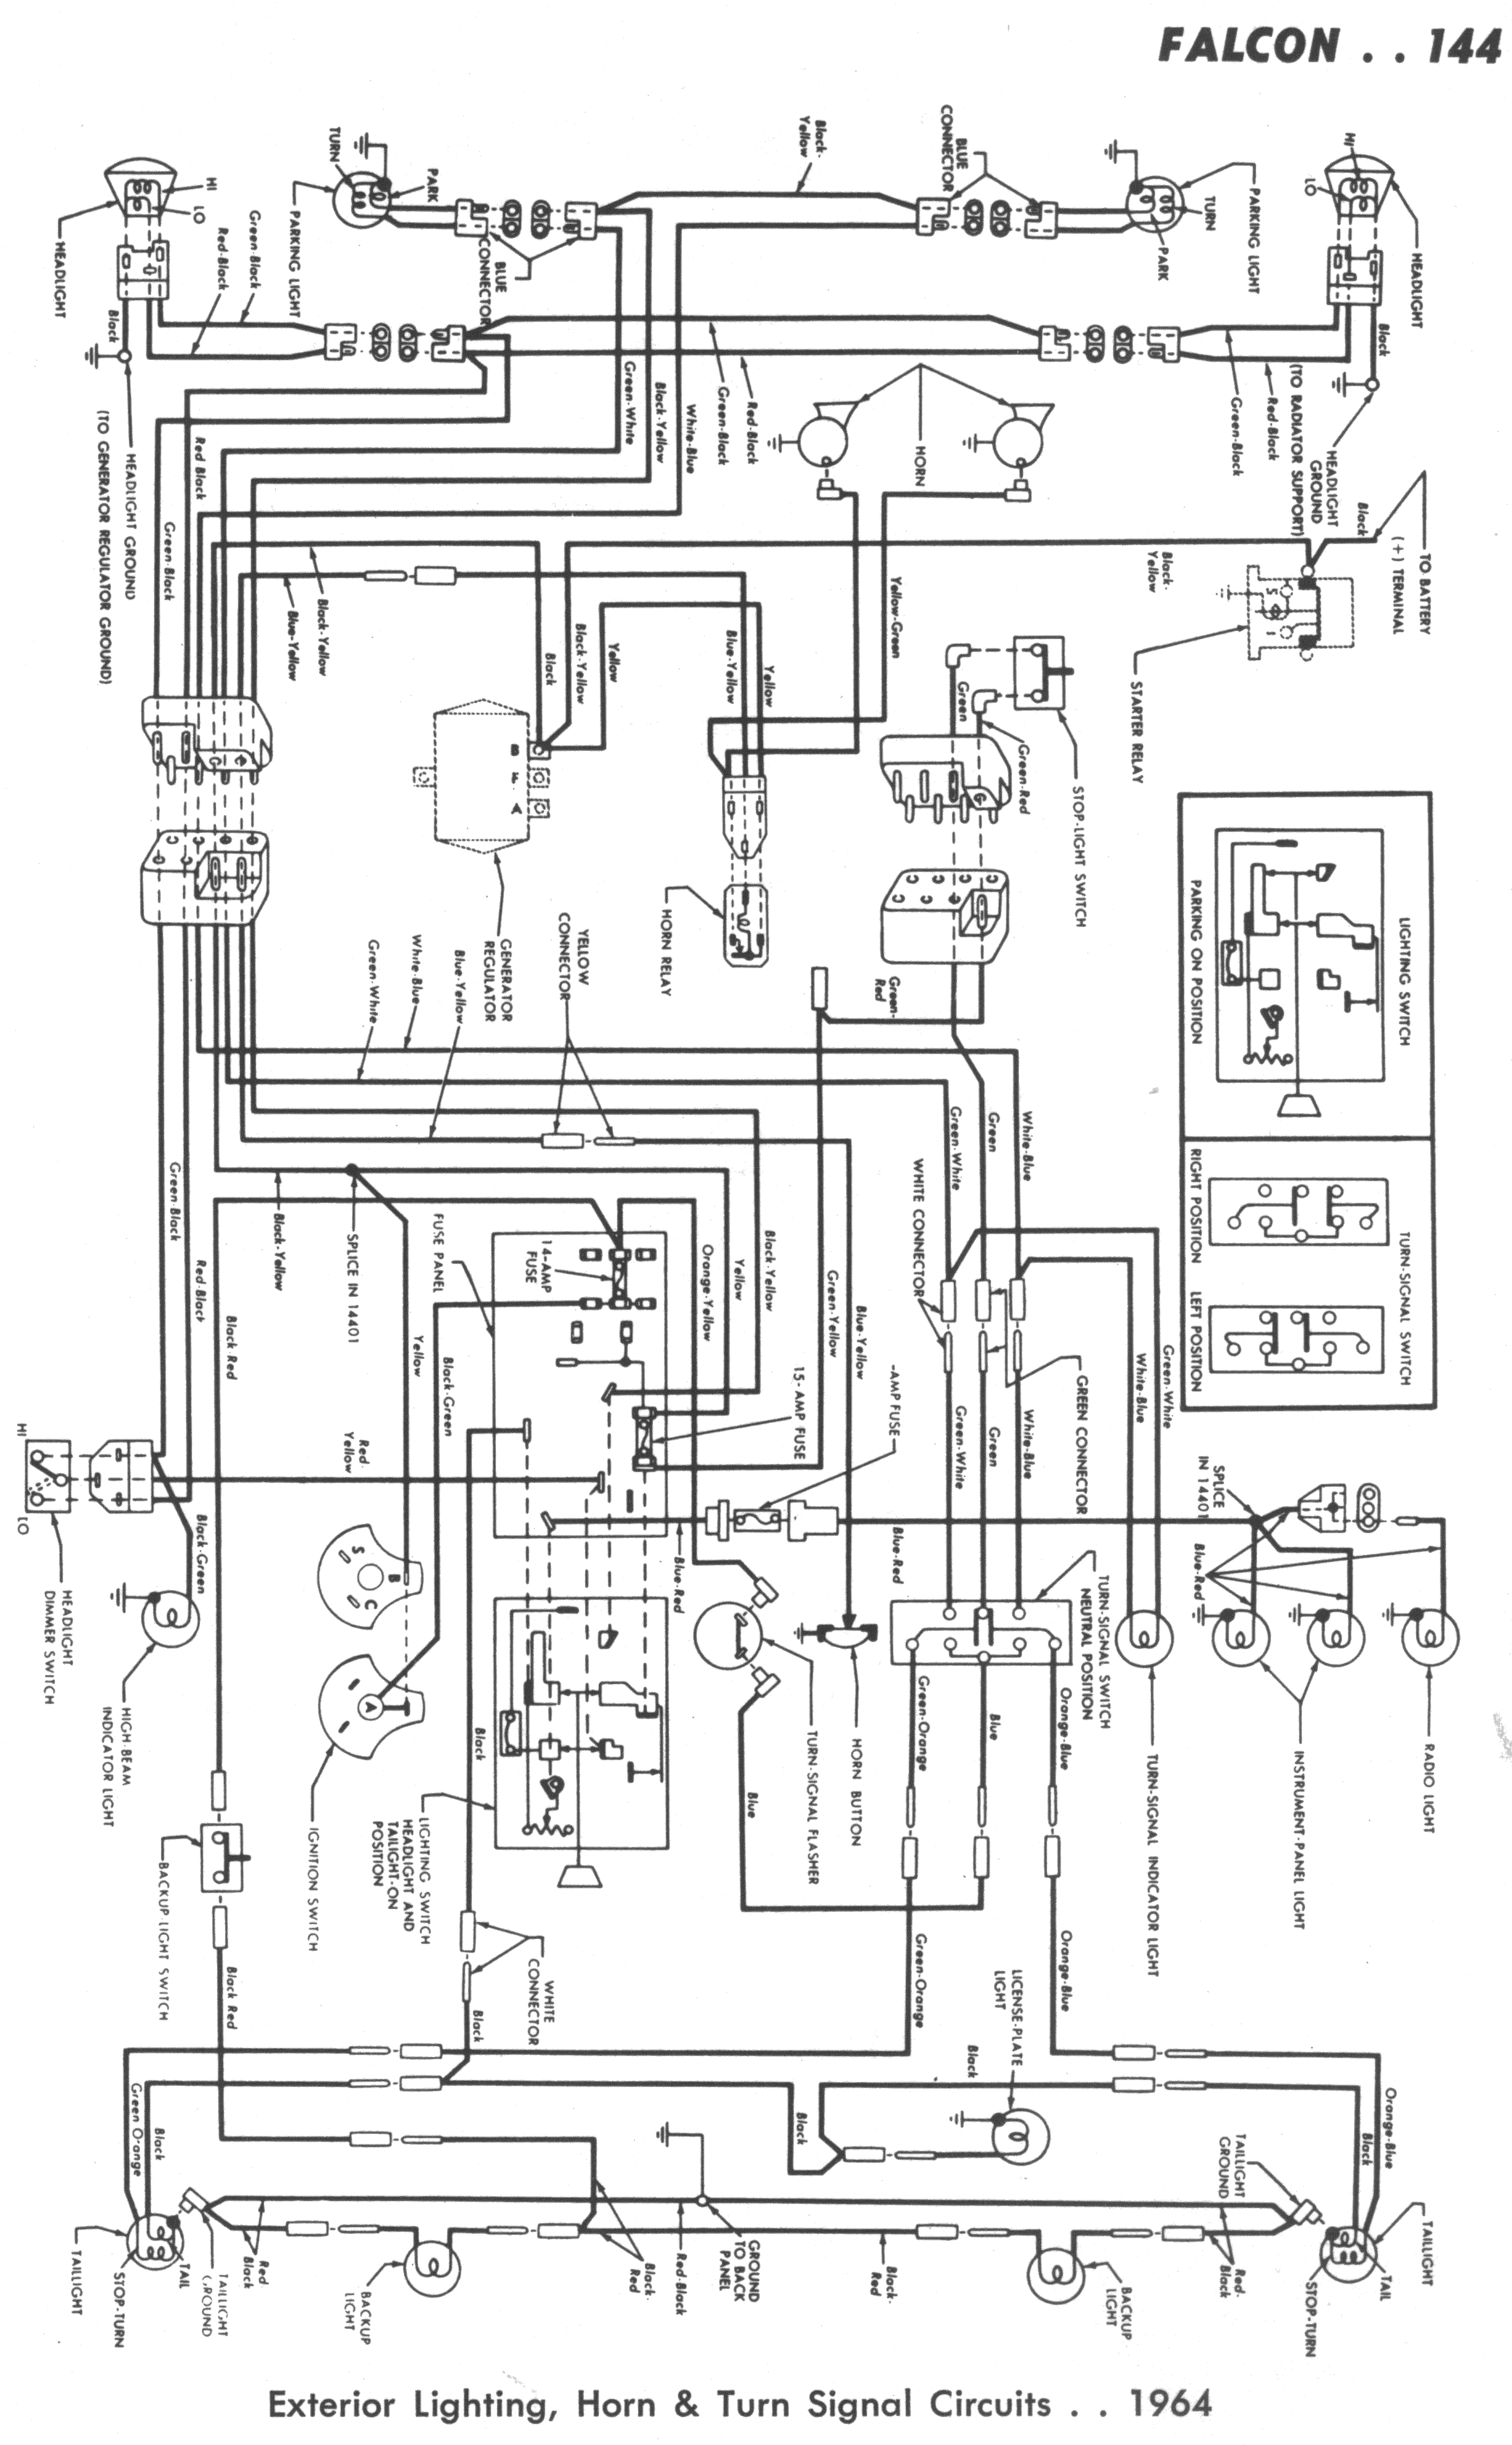 1963 Falcon Wiring Diagram - Wiring Diagram Home